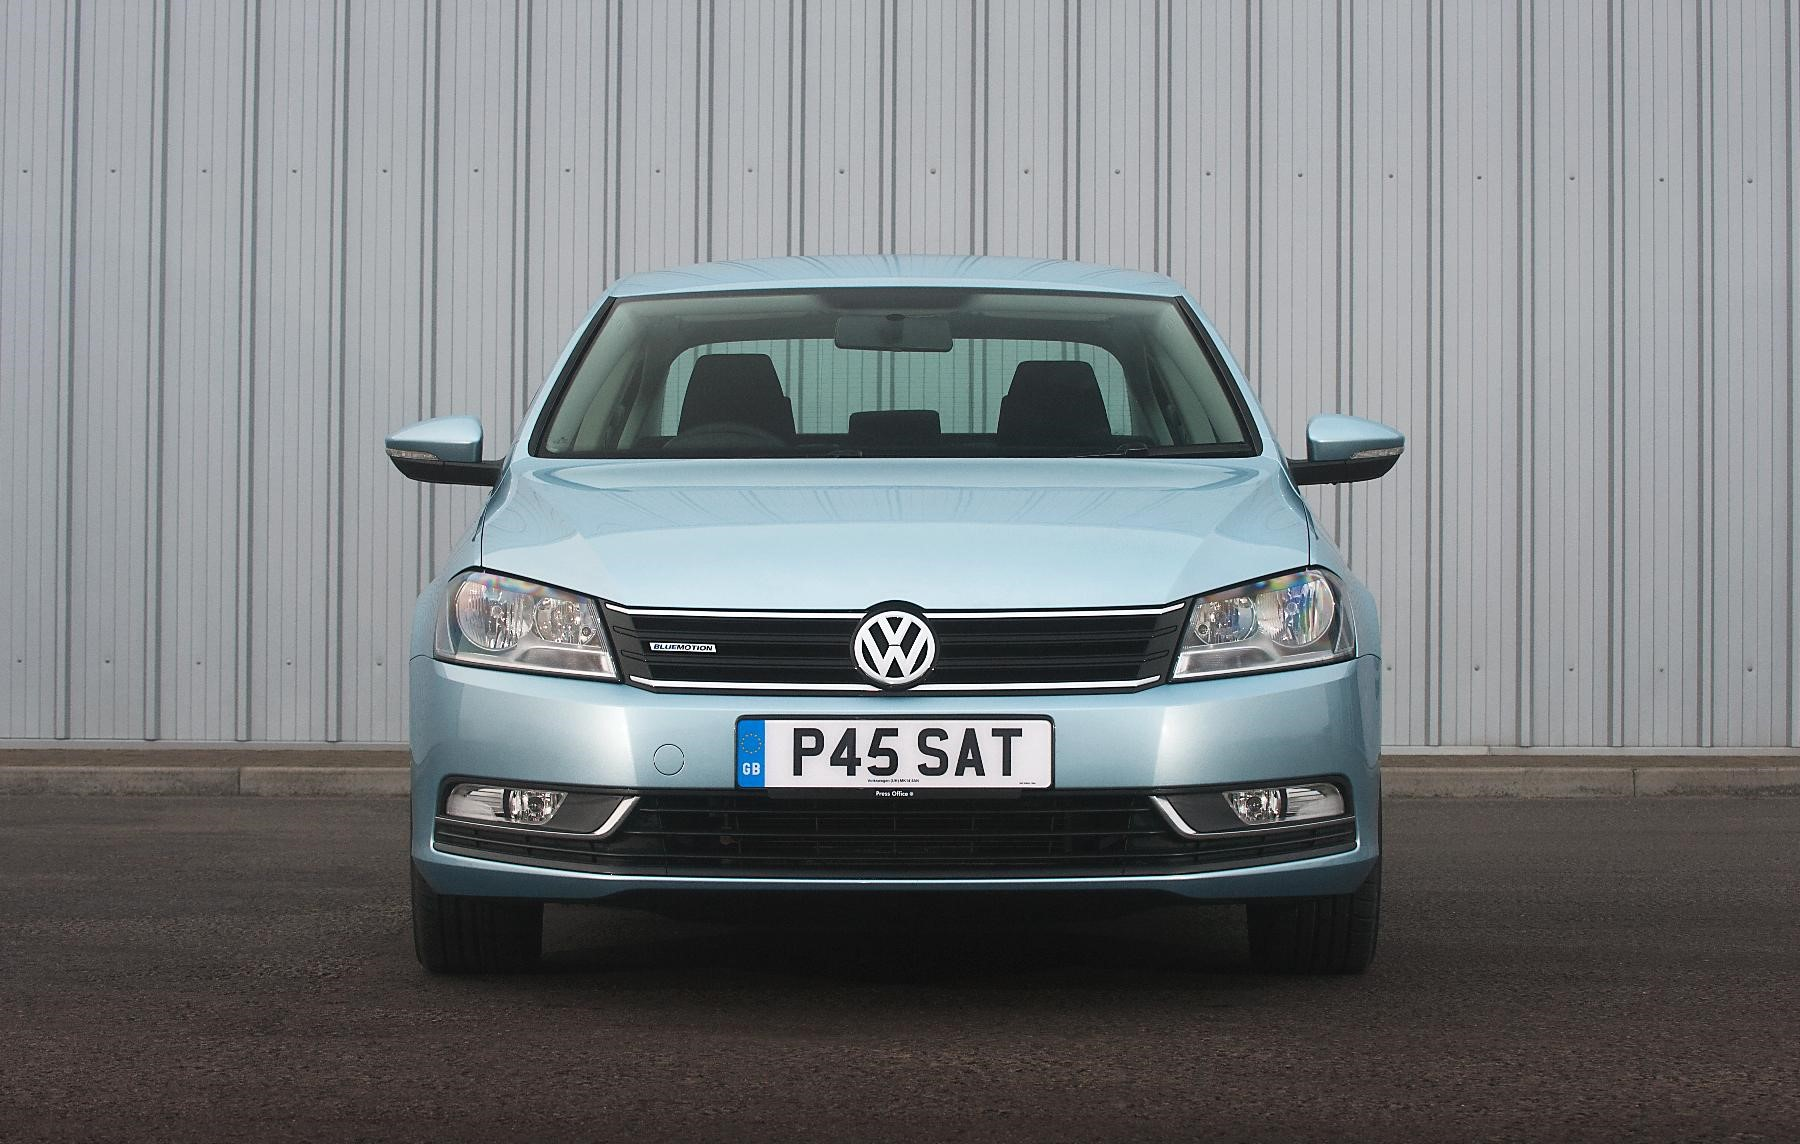 Vauxhall Passat front view in blue